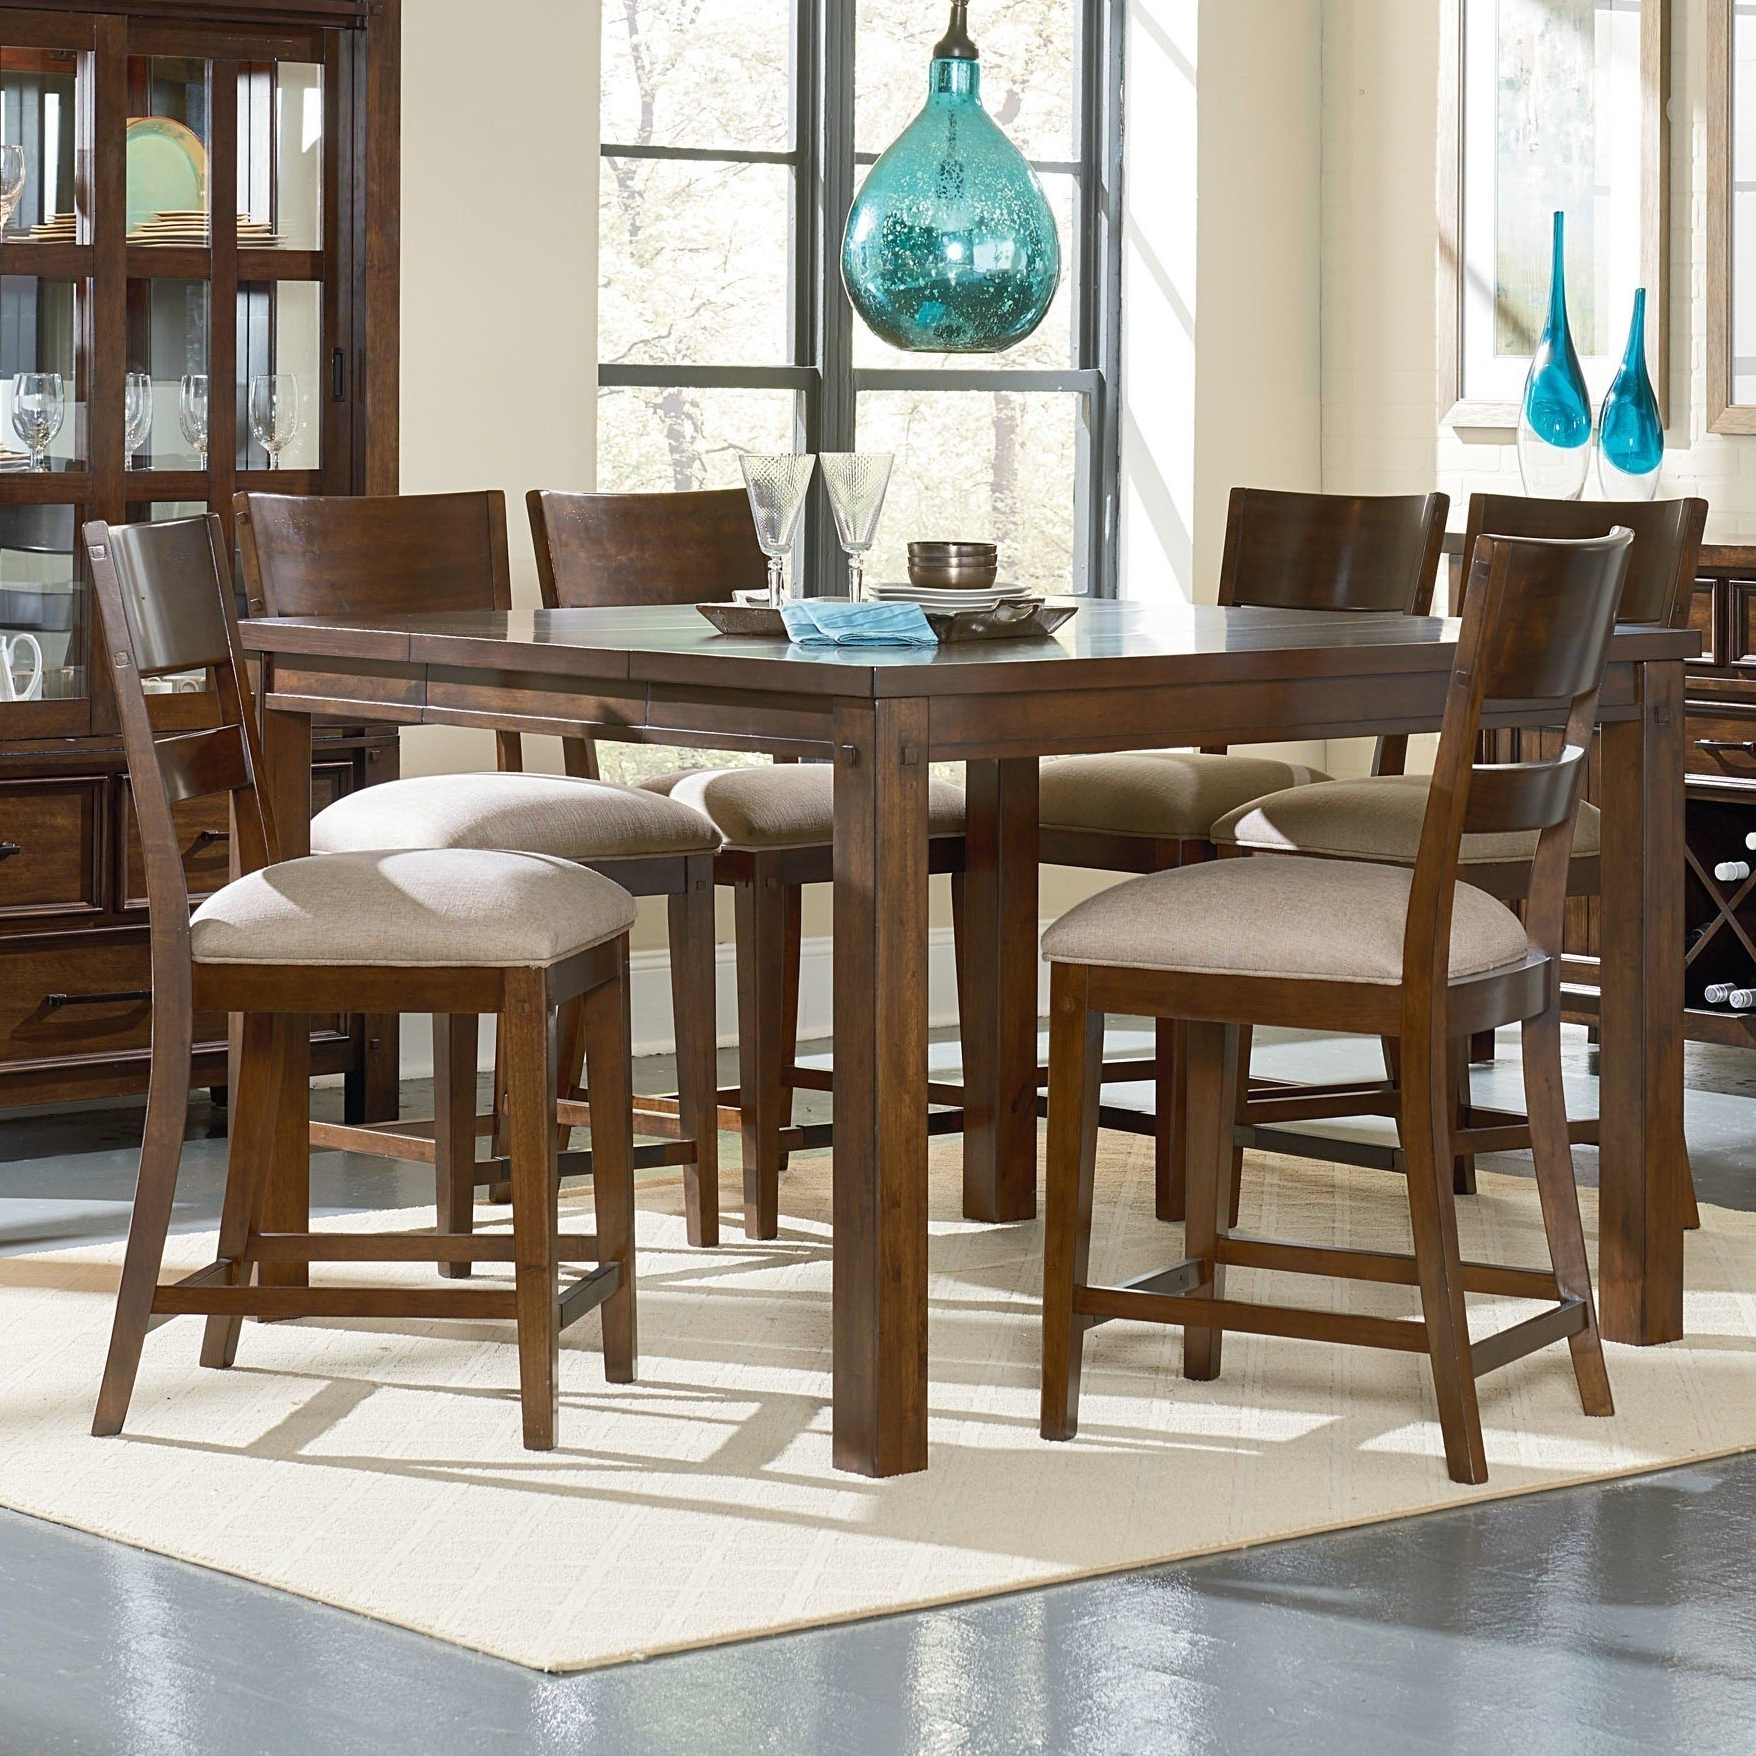 Most Up To Date Parquet 7 Piece Dining Sets Inside Square Dining Table For 6 – Visual Hunt (View 20 of 25)